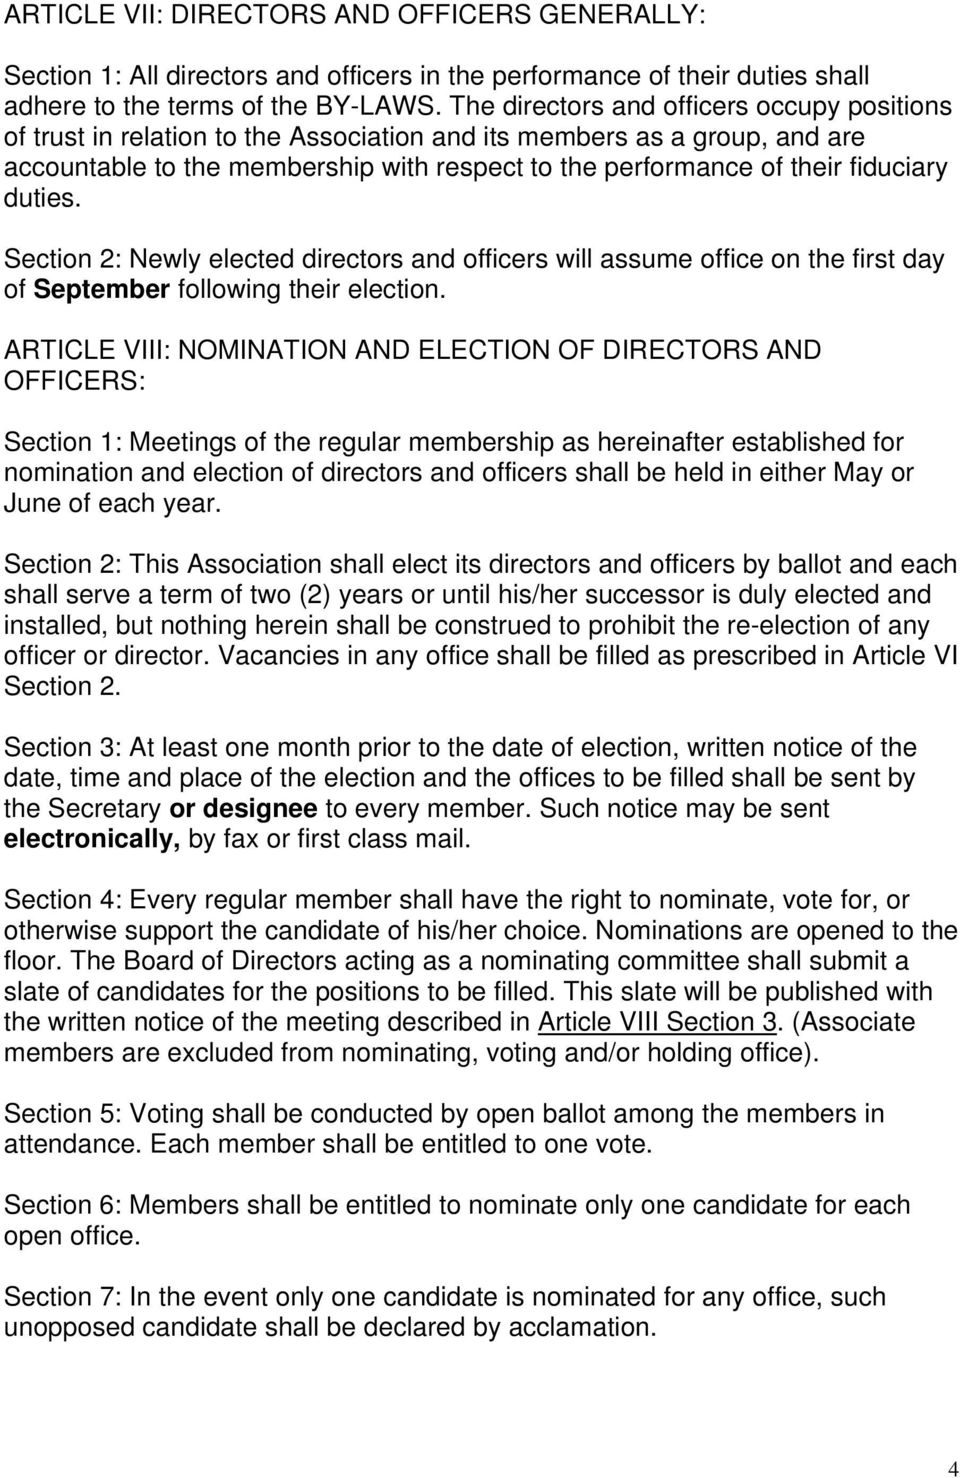 fiduciary duties. Section 2: Newly elected directors and officers will assume office on the first day of September following their election.